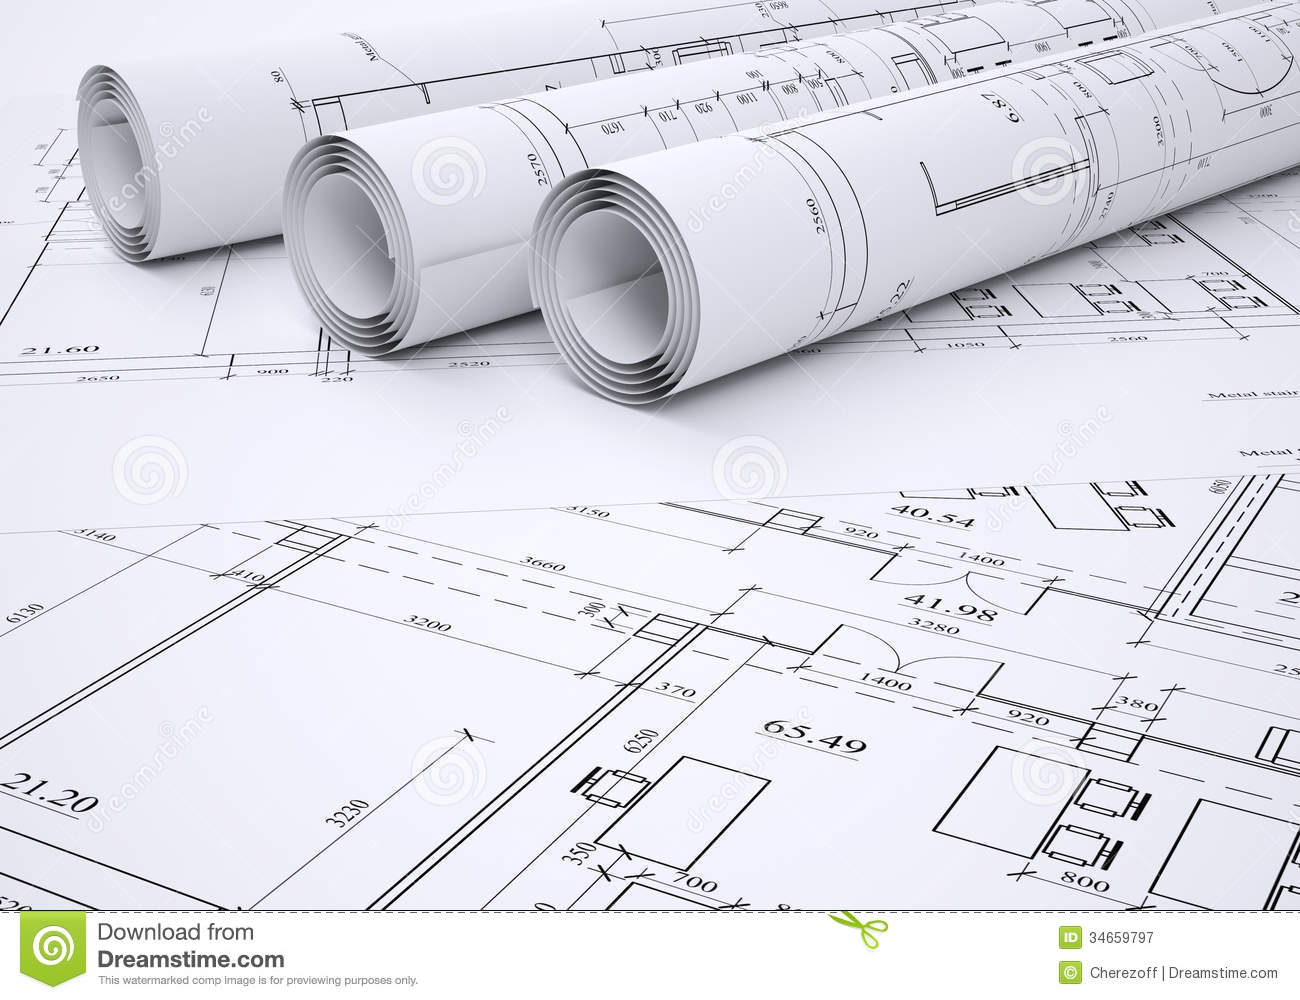 Architectural drawing rich image and wallpaper Online architecture drawing